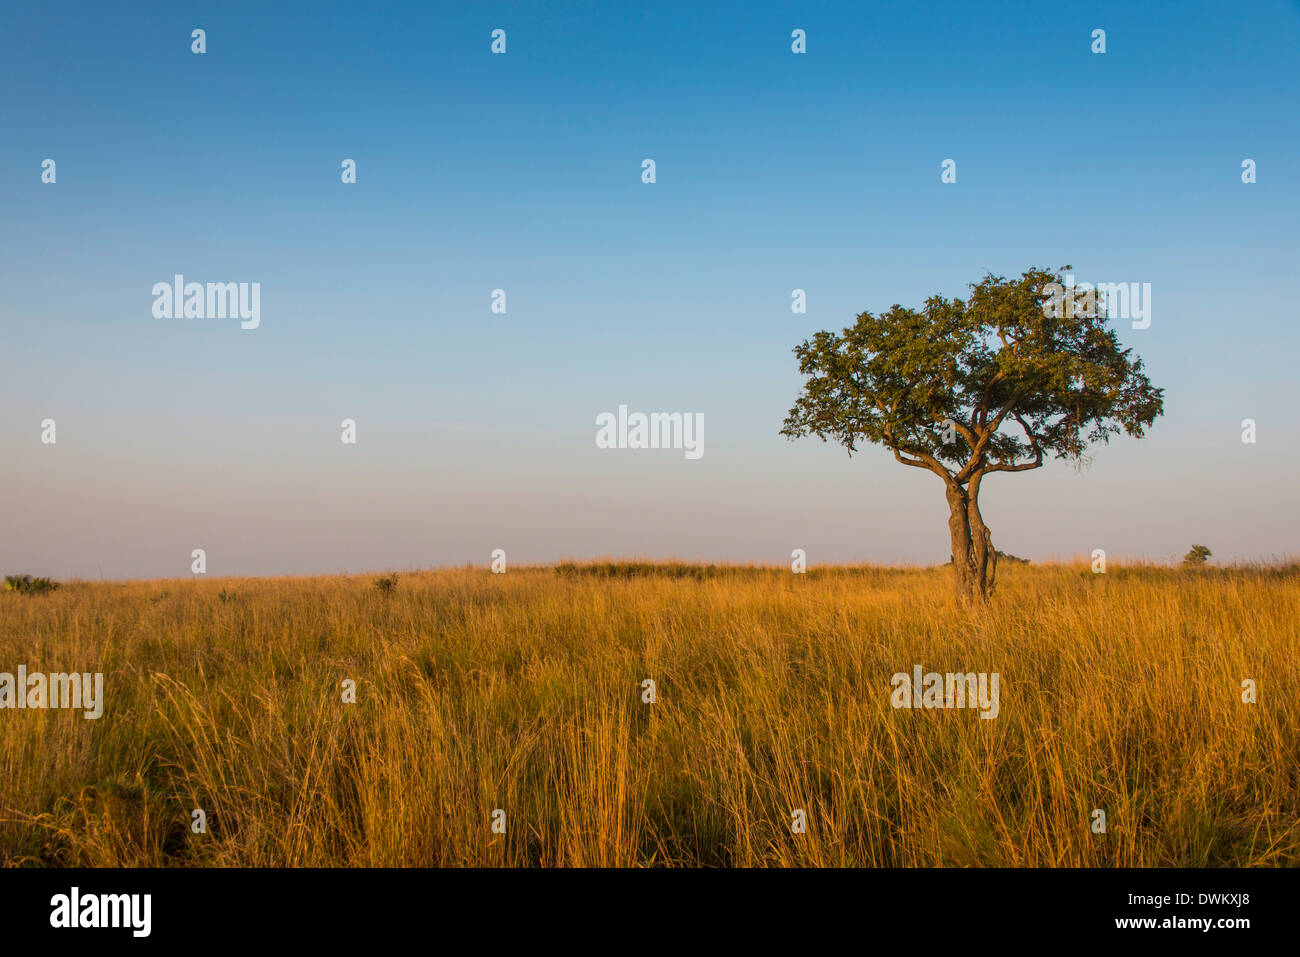 Lonely tree in the Savannah of the Murchison Falls National Park, Uganda, East Africa, Africa - Stock Image